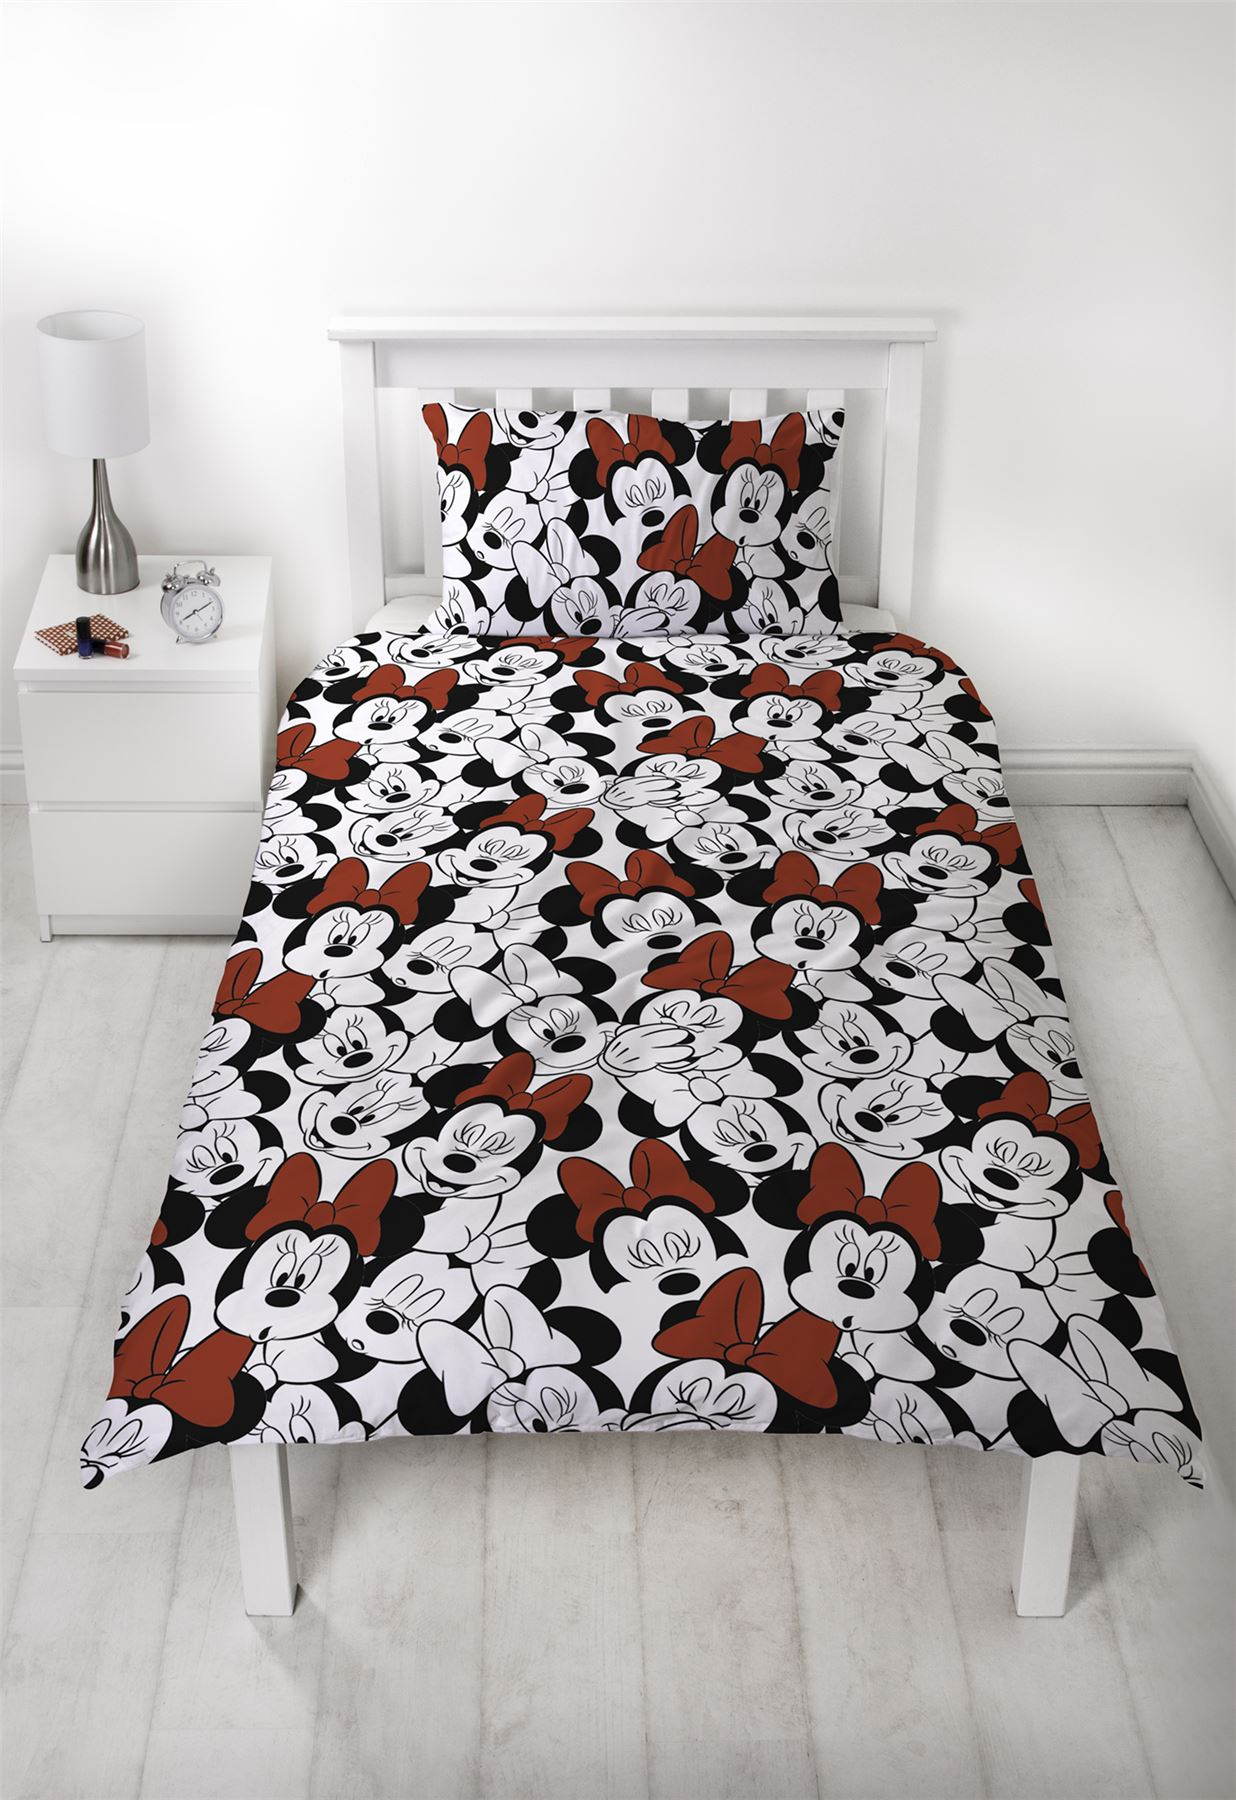 Disney-Minnie-Mouse-039-Cute-039-Single-Double-Duvet-Cover-Reversible-Bedding-Set